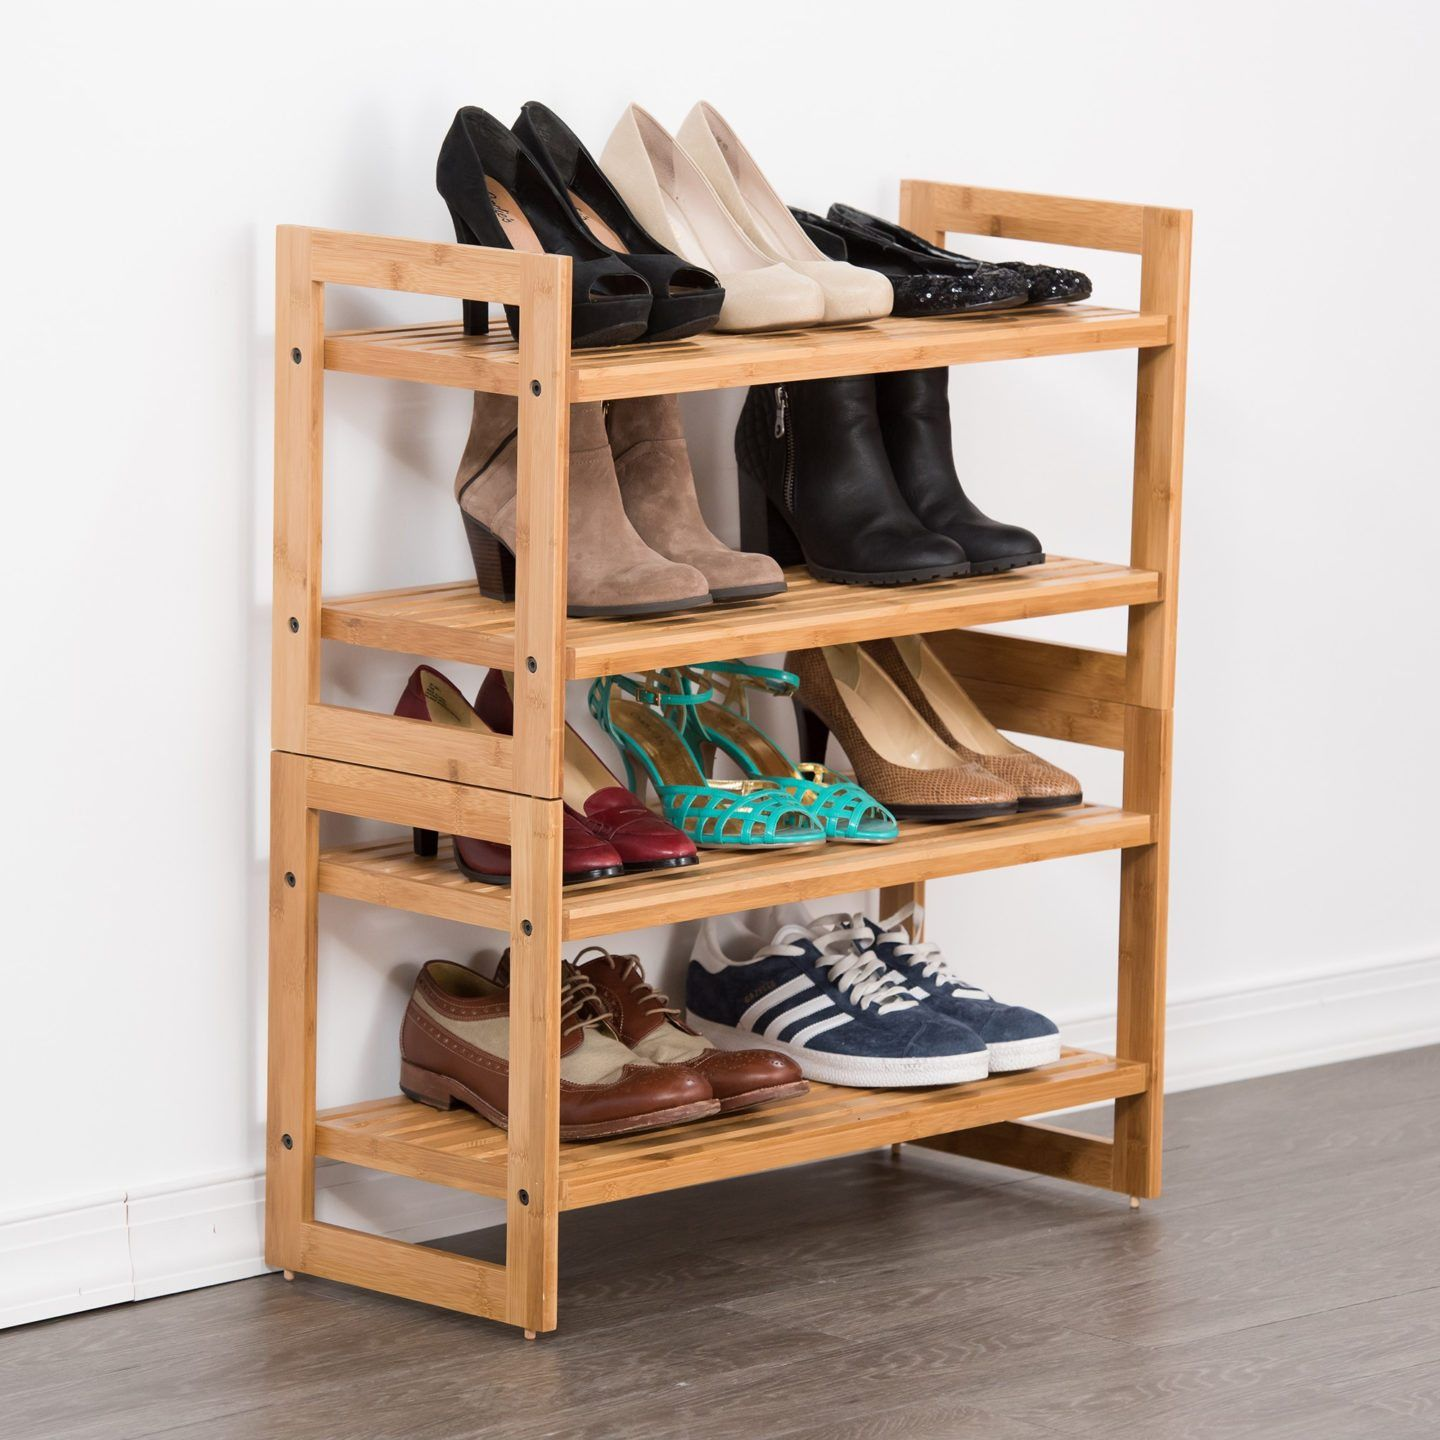 Shoe Storage Rack If you only need